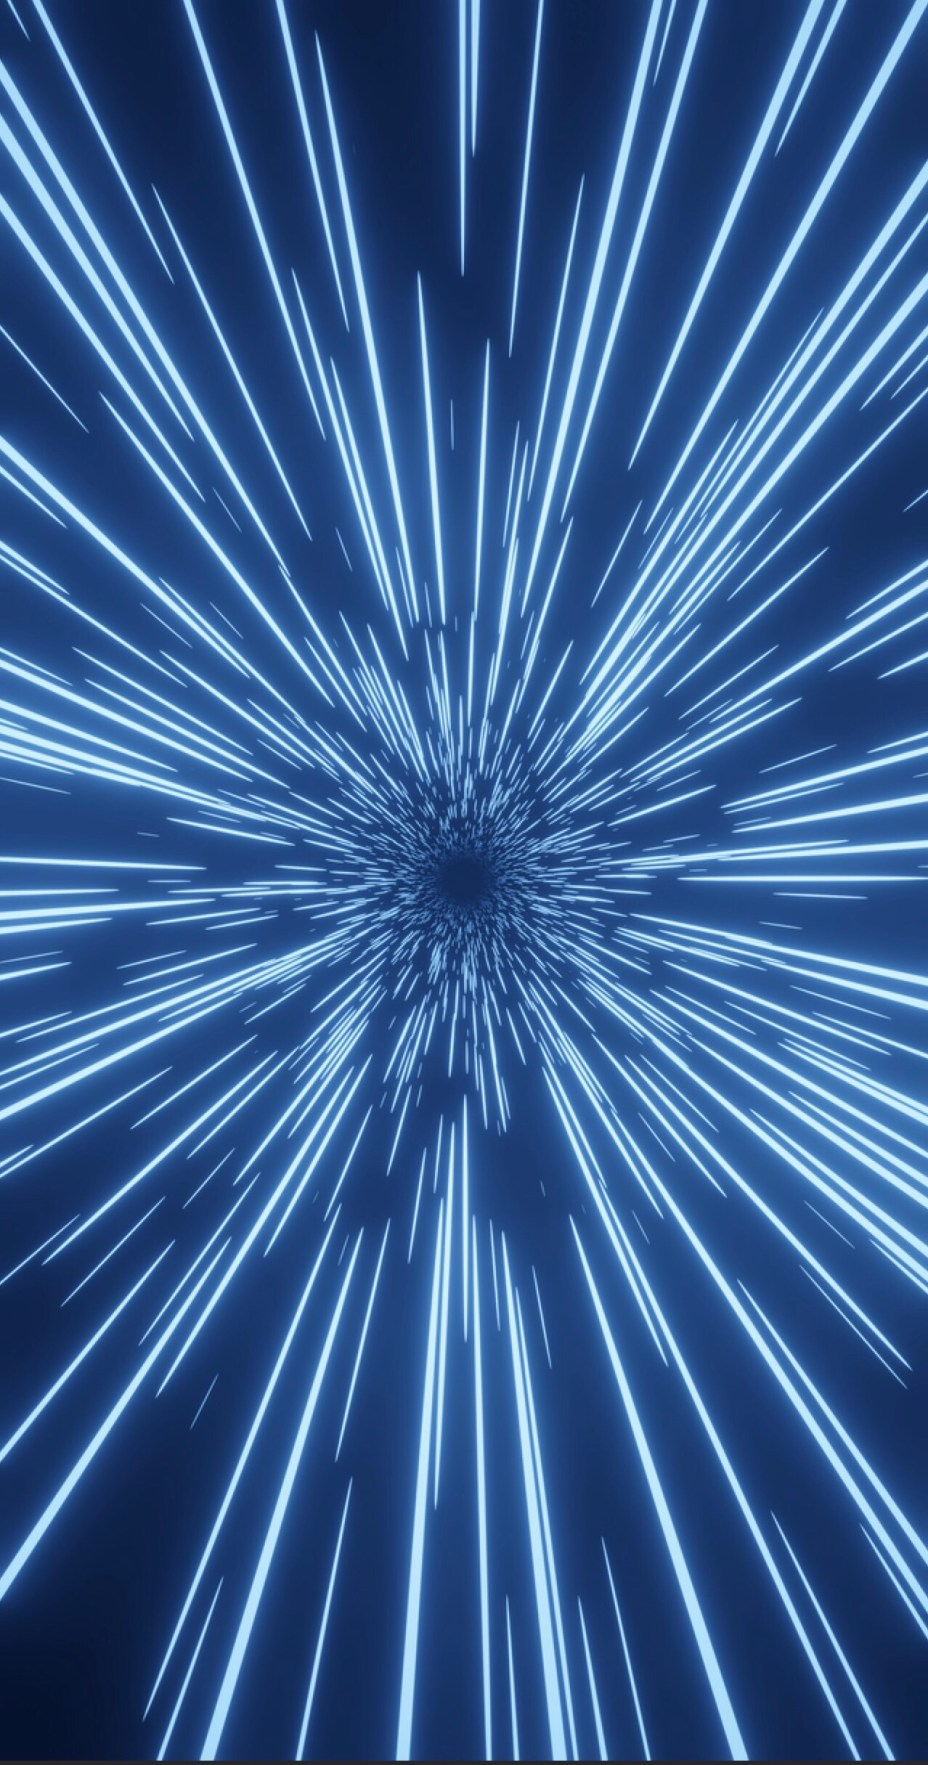 Star Wars Hyperspace Phone Wallpaper Hd Wallpapers For Tech